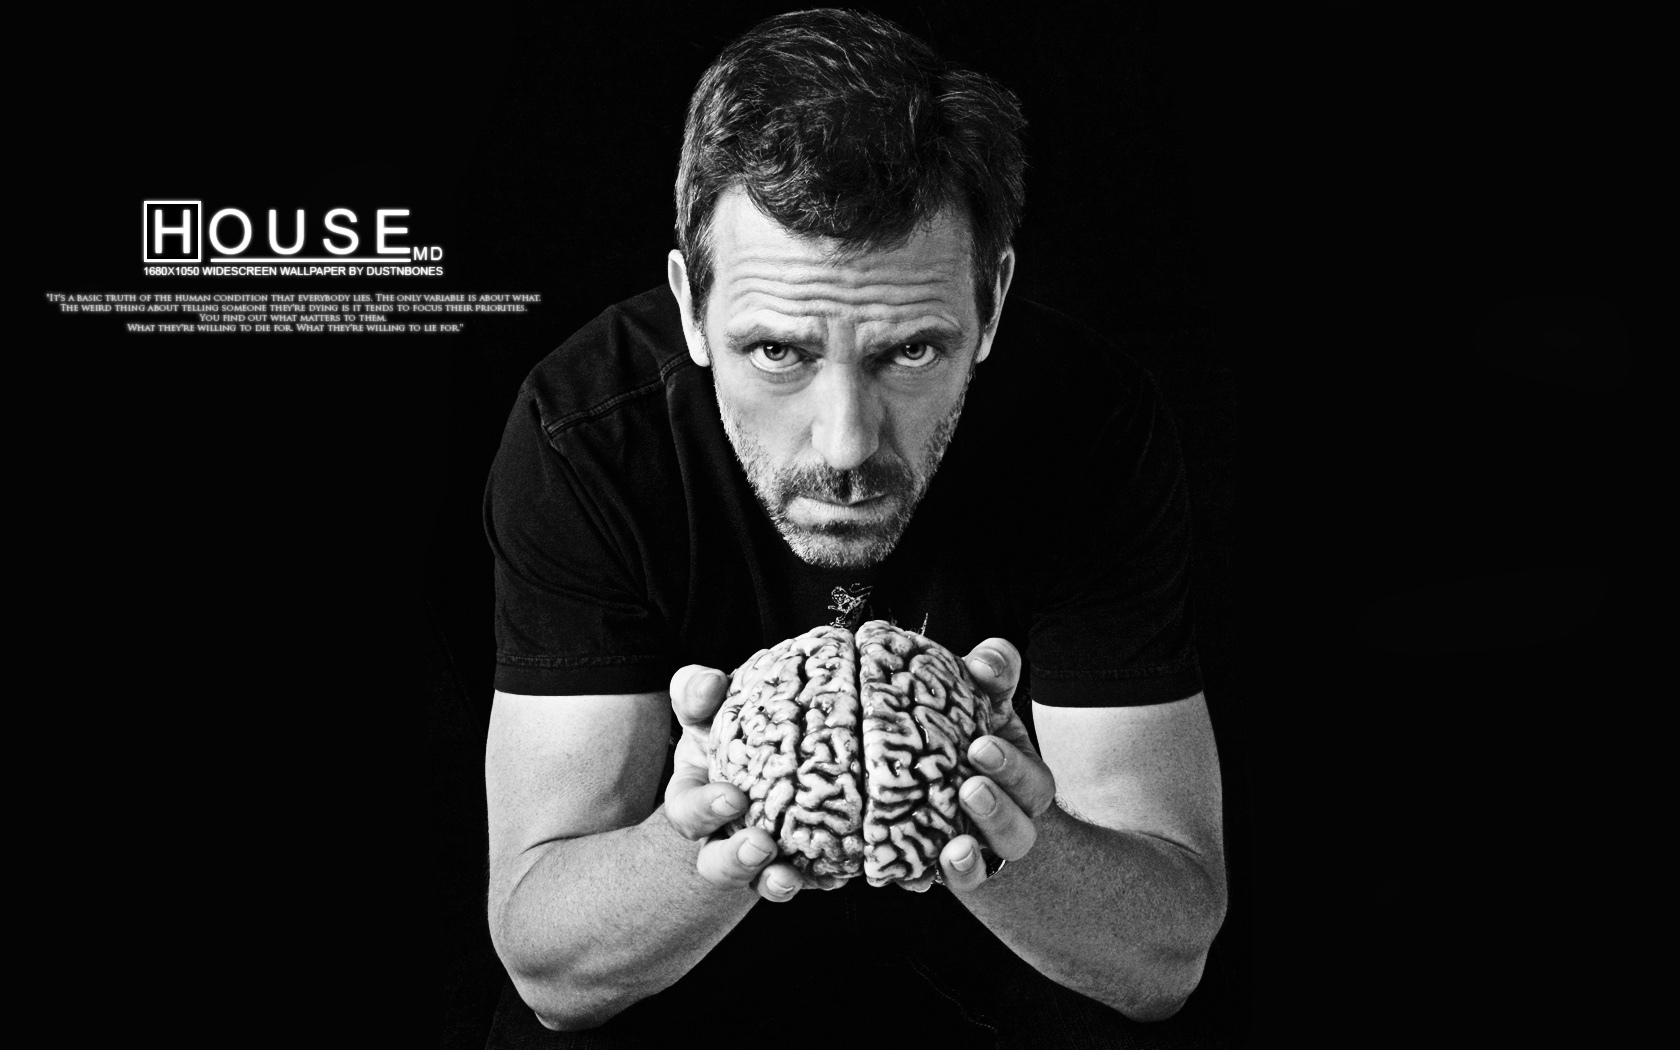 House Widescreen Wallpaper   House MD Wallpaper 6490277 1680x1050